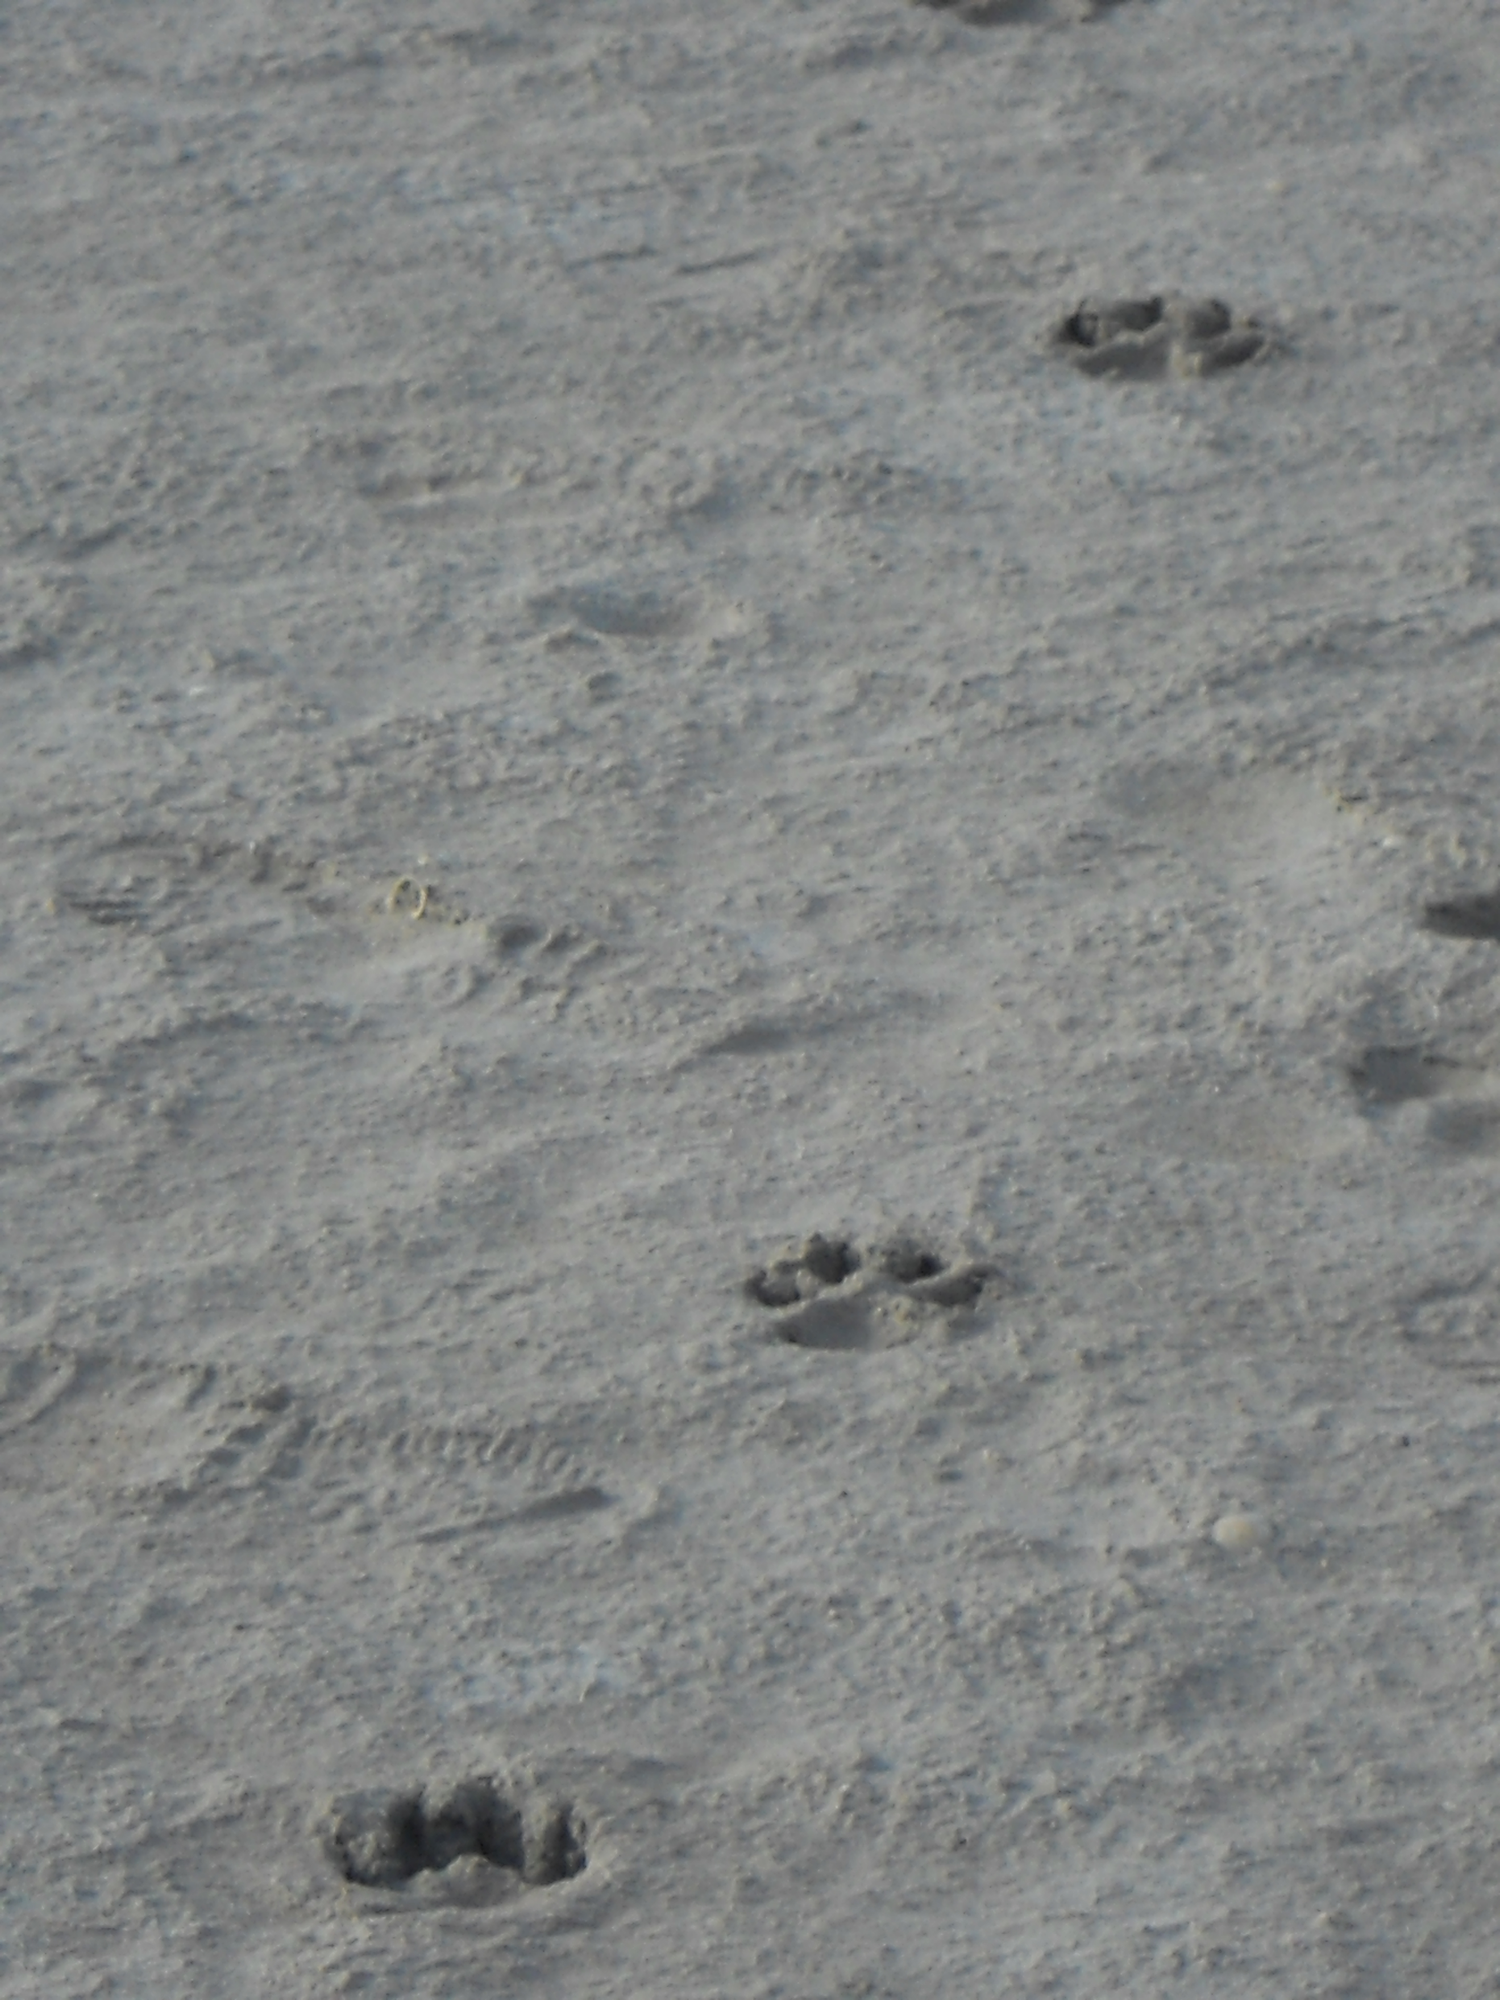 Thylacine trackway, South Australia, 2015.